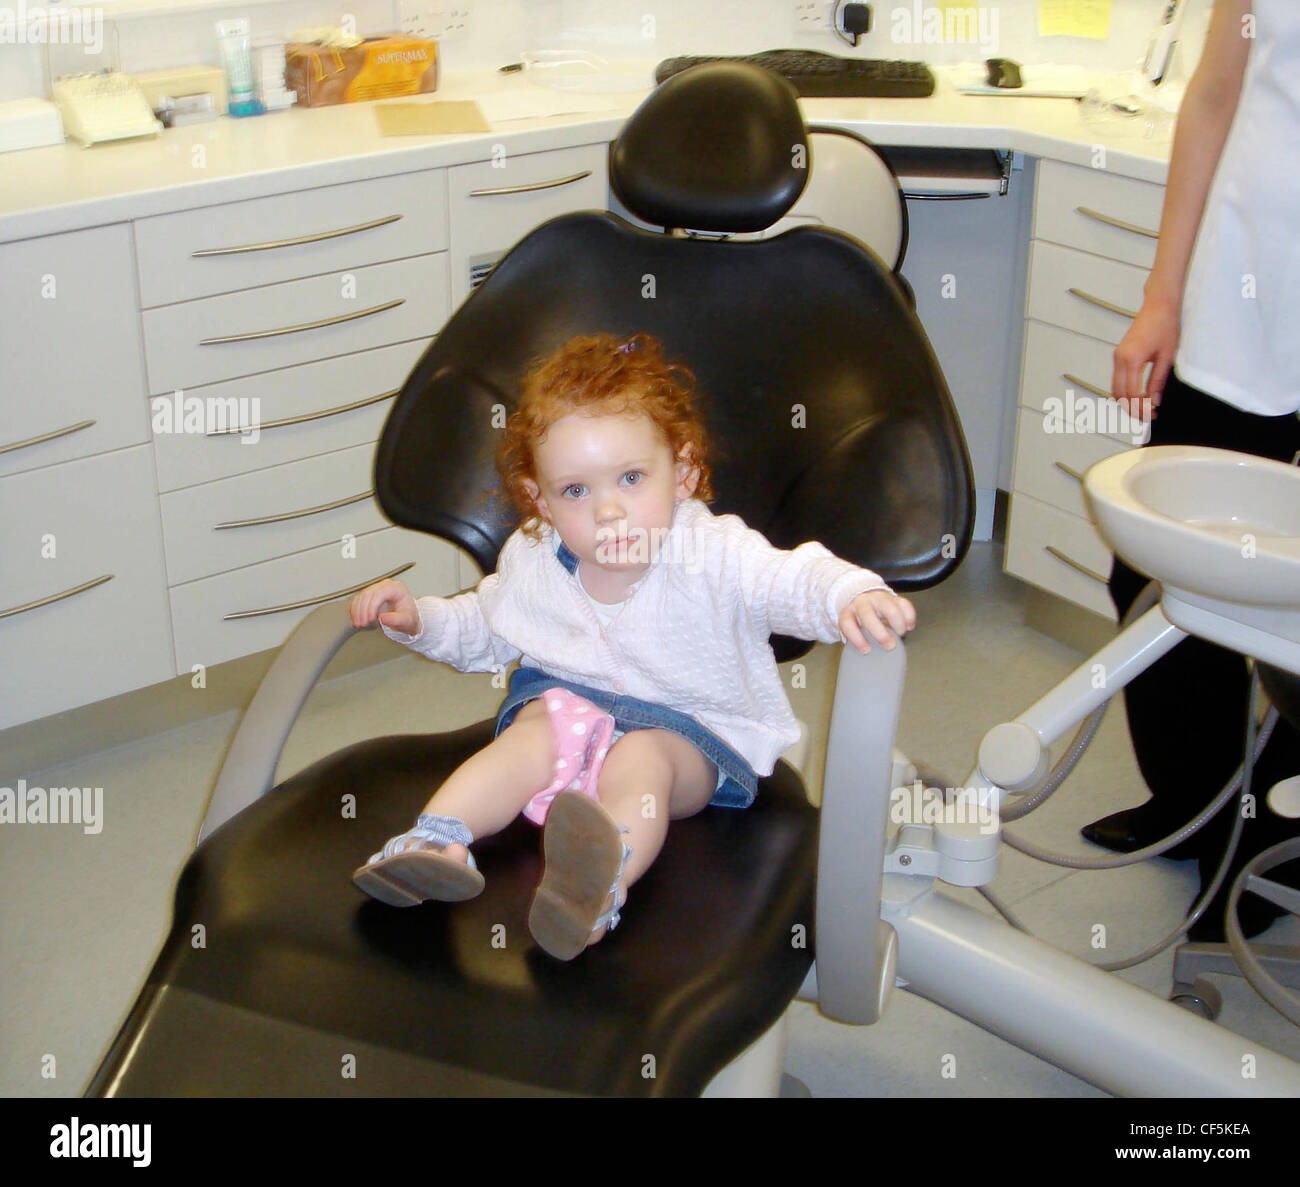 Black child sitting in chair - Female Child Curly Red Hair Wearing A Denim Dress And White Cardigan Sitting In Black Dentists Chair Unsmiling Looking At